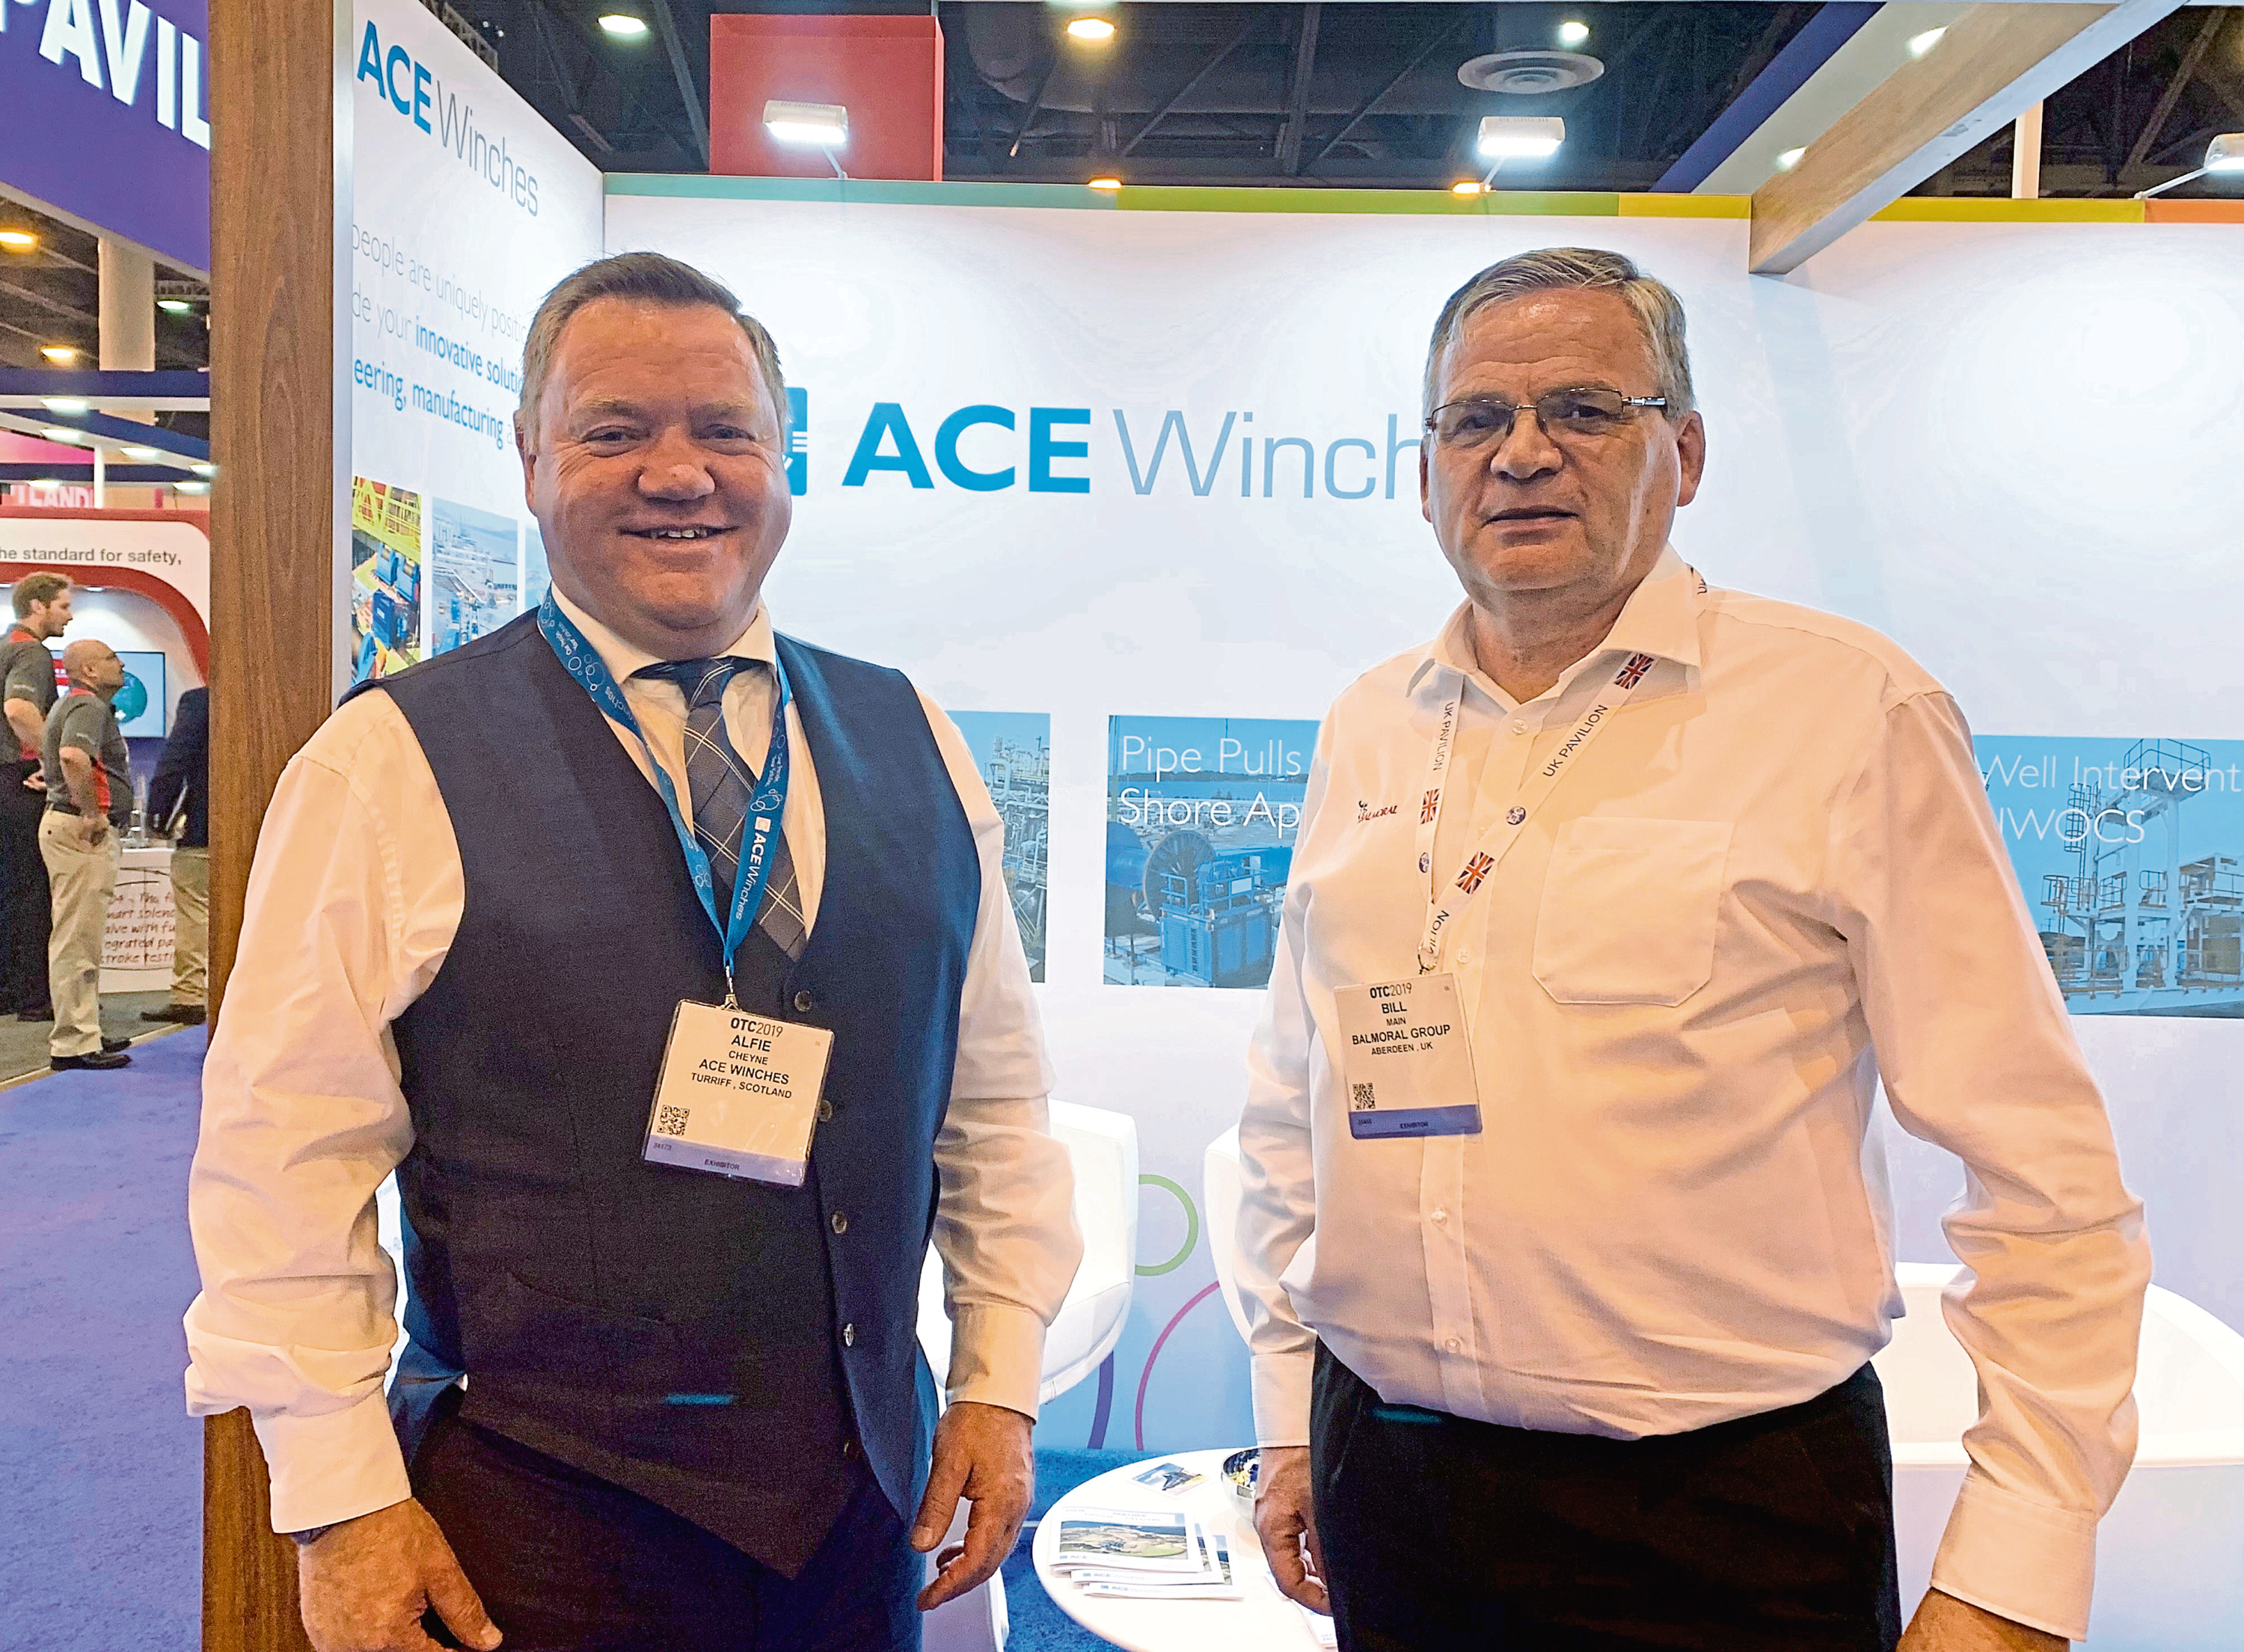 alfie cheyne, left, chief executive of ace Winches and Bill Main, finance director at Balmoral group